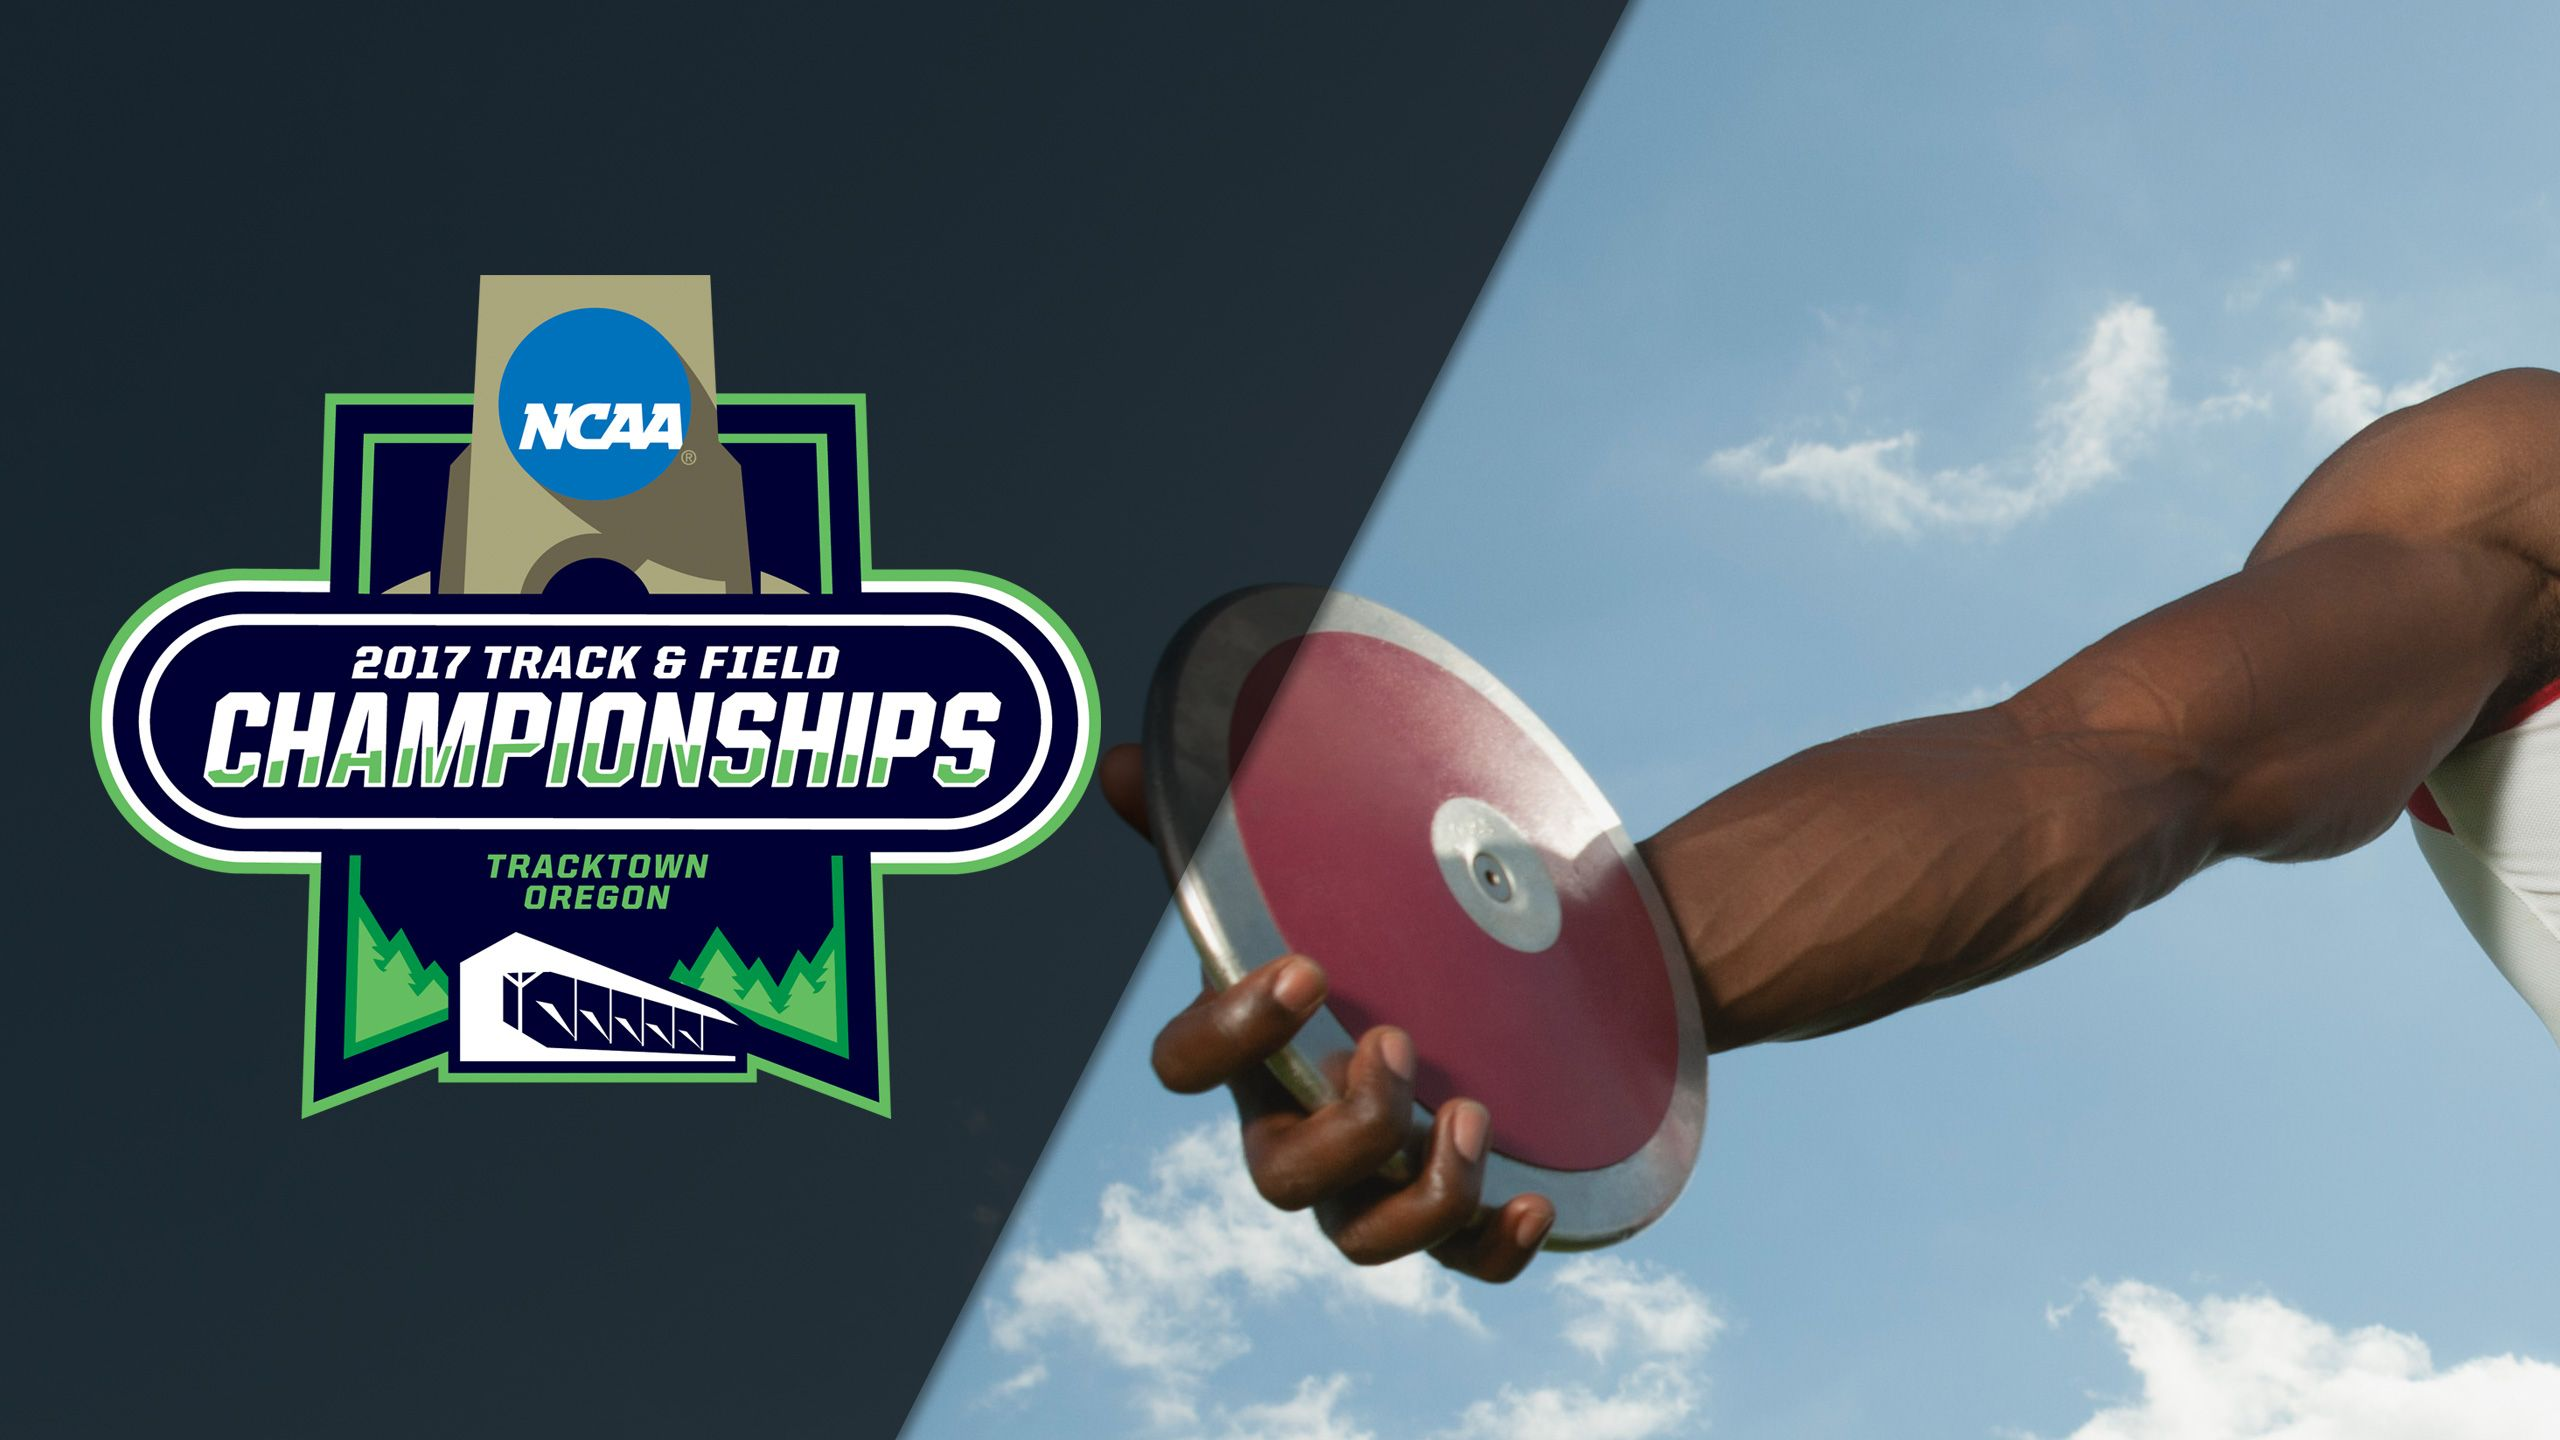 NCAA Track & Field Outdoor Championships - Men's Discus Throw Final